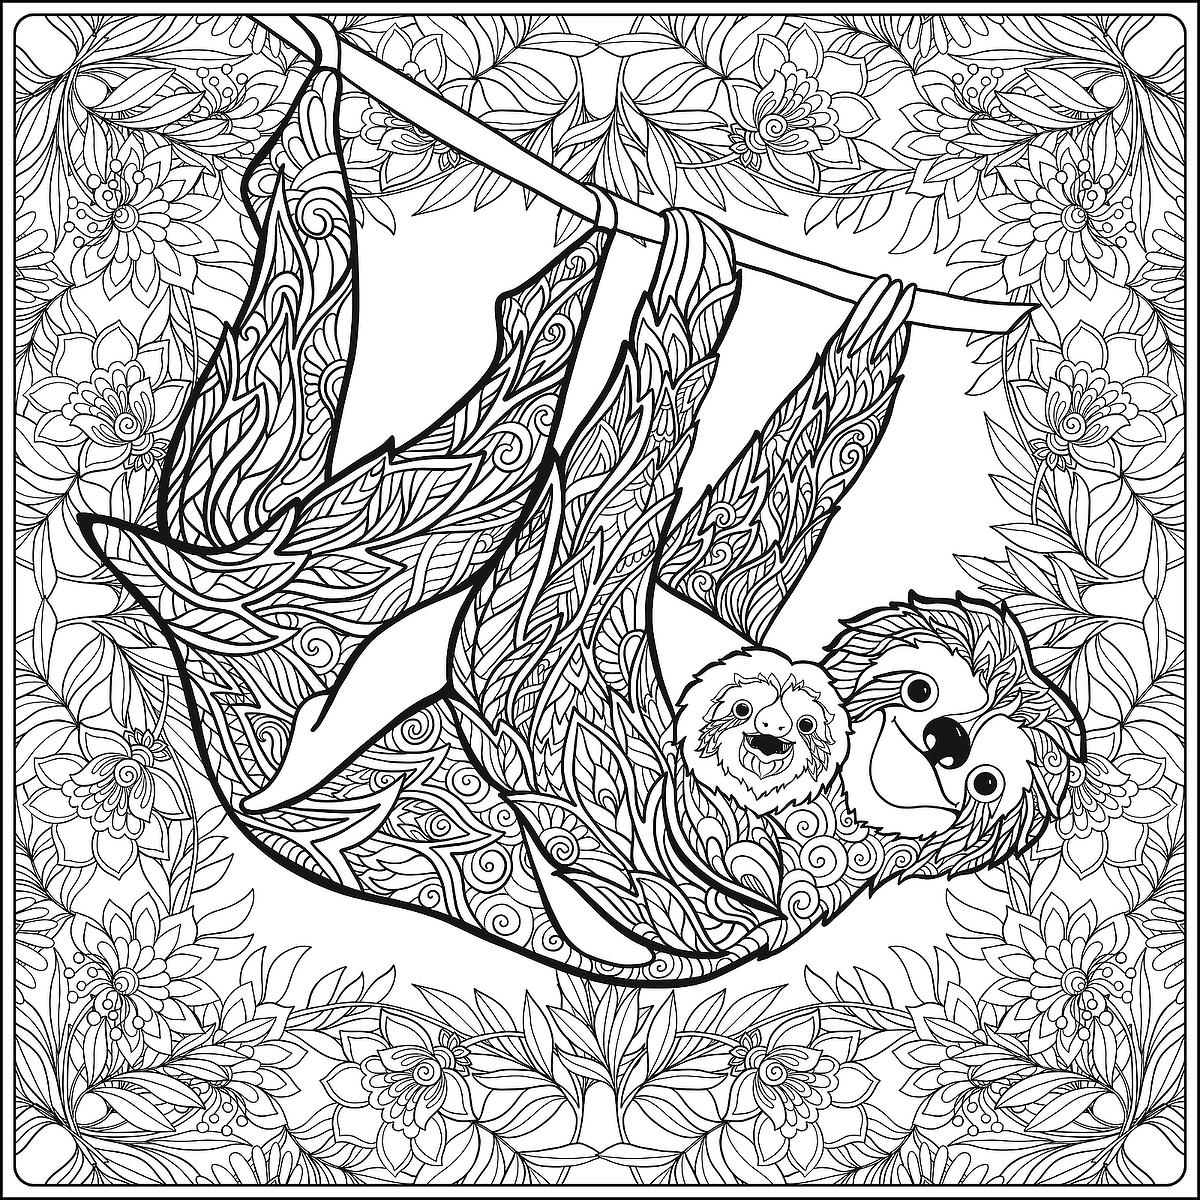 sloth pictures to print cute sloth drawing at getdrawings free download to pictures sloth print